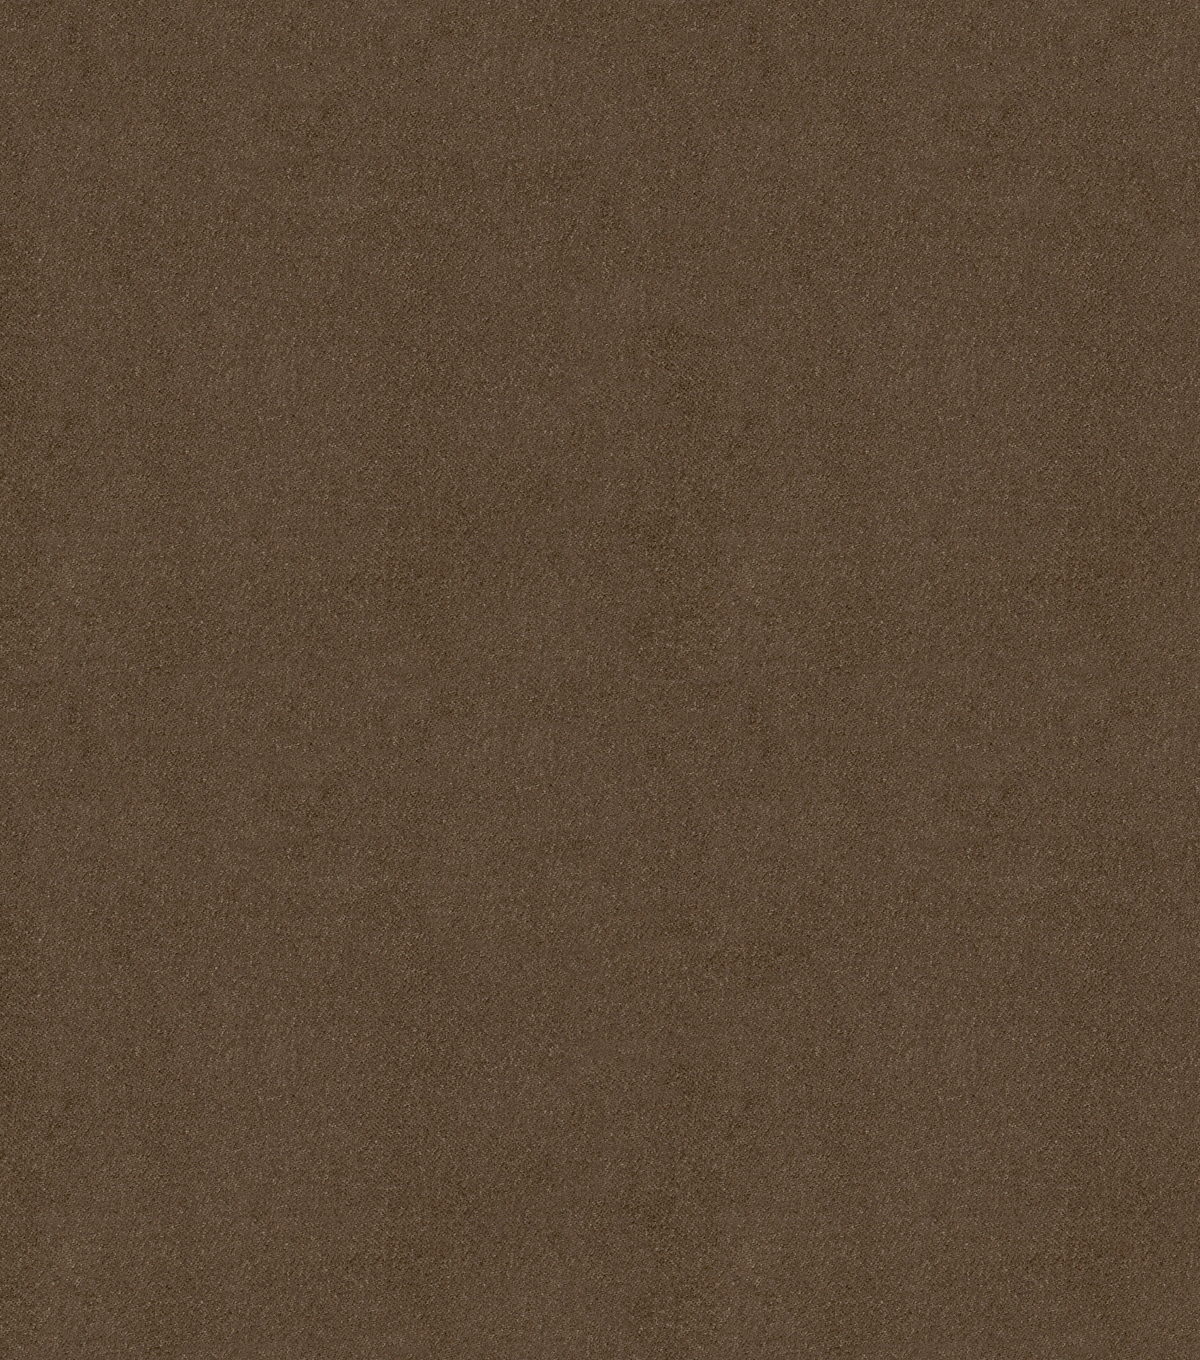 Signature Series Multi-Purpose Faux Suede Decor Fabric 58\u0022-Roasted Coffee